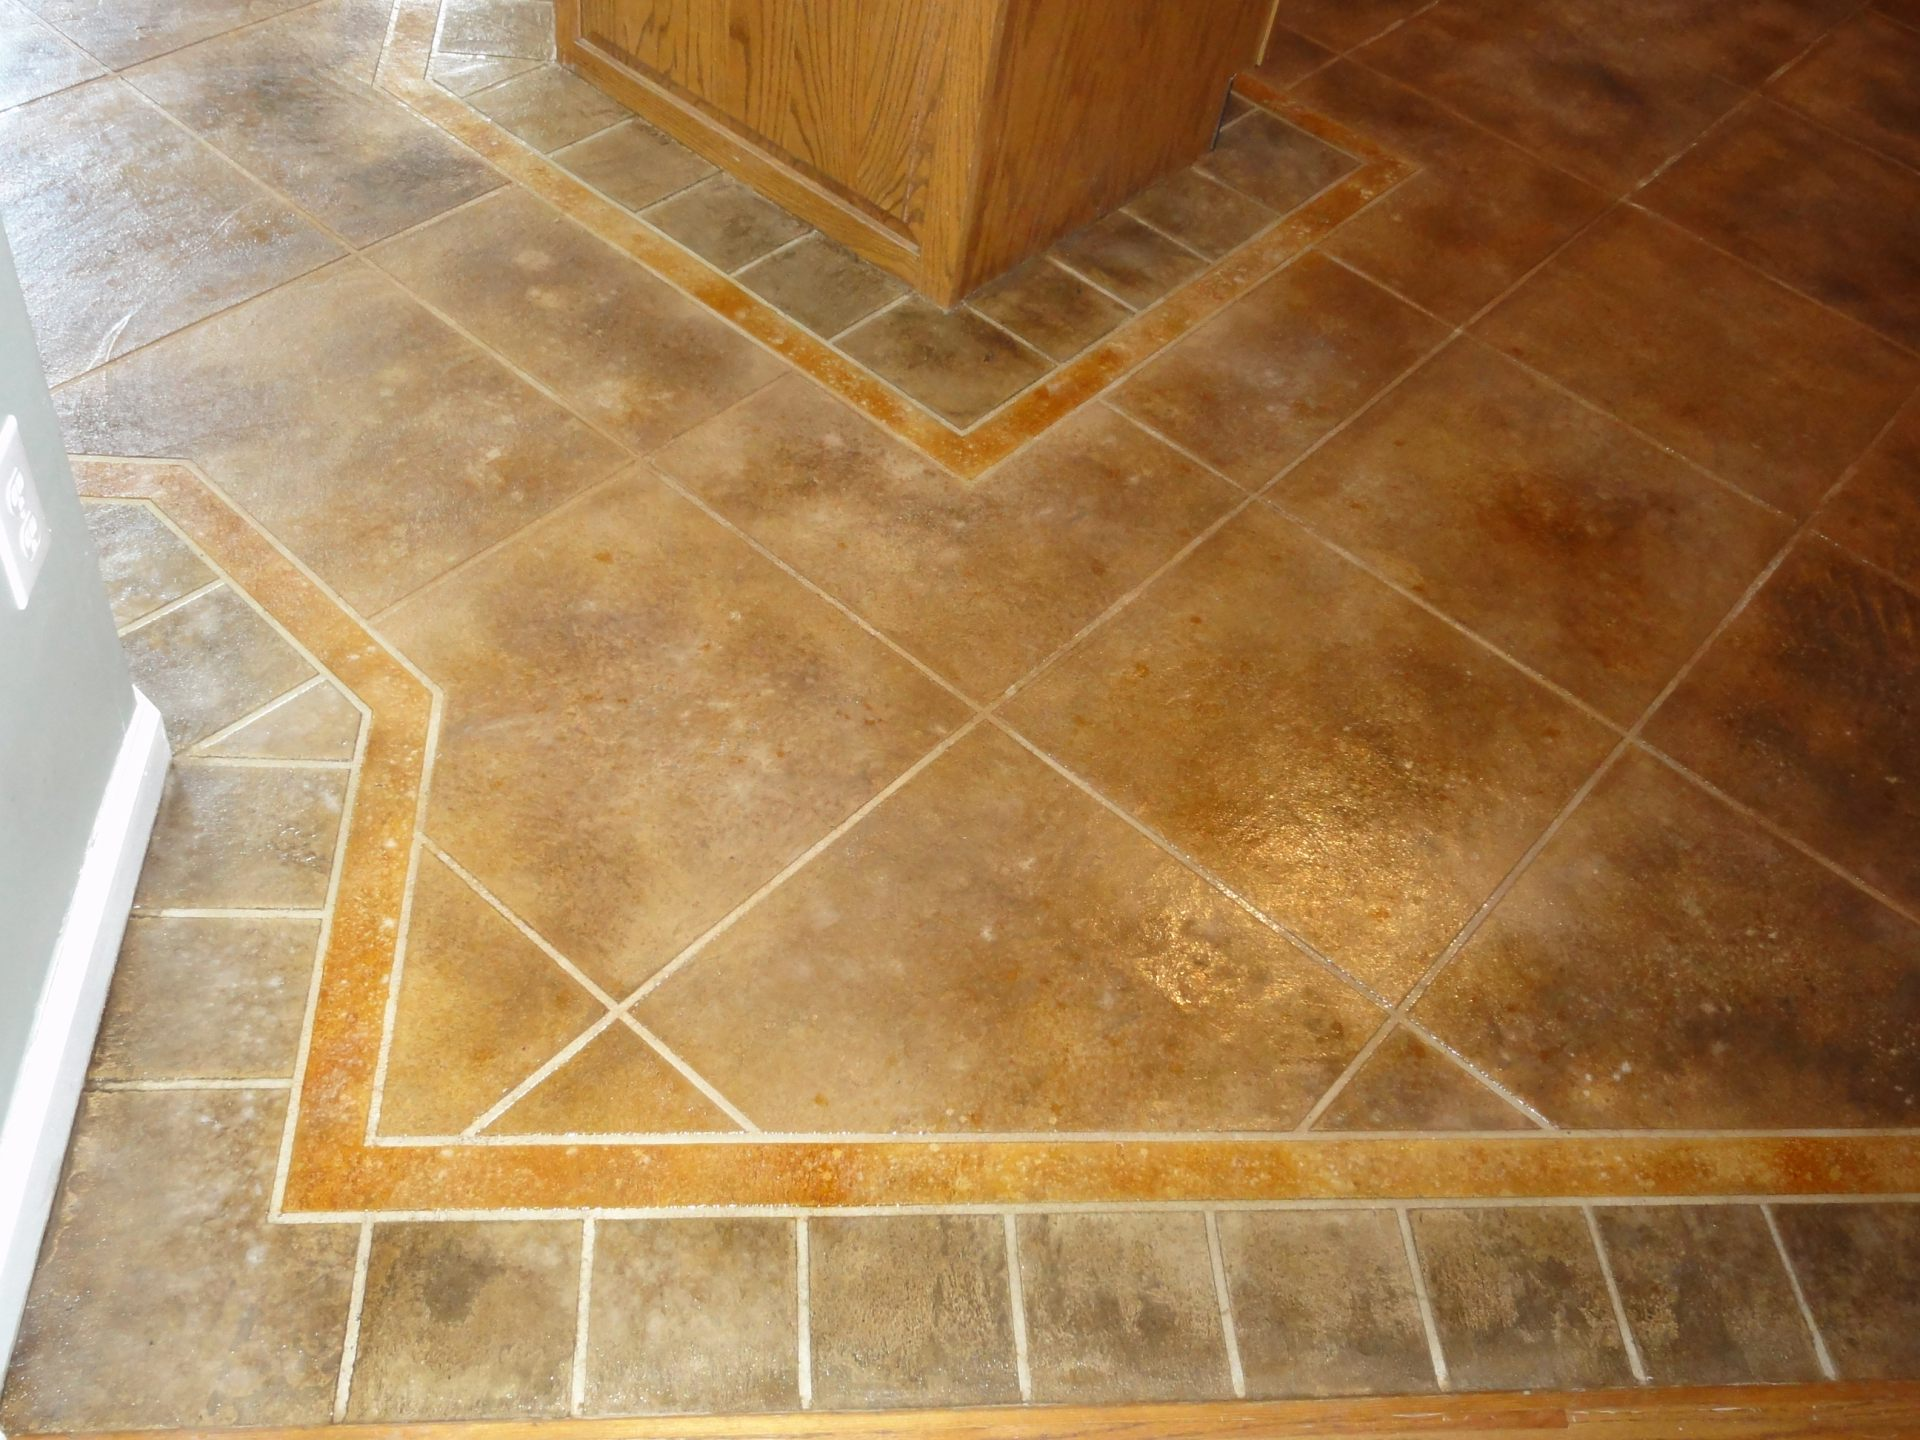 Floor Tile Design Ideas floor tile designs for kitchens part 4 ceramic tile kitchen floor ideas Floor Tile Patterns For Kitchens